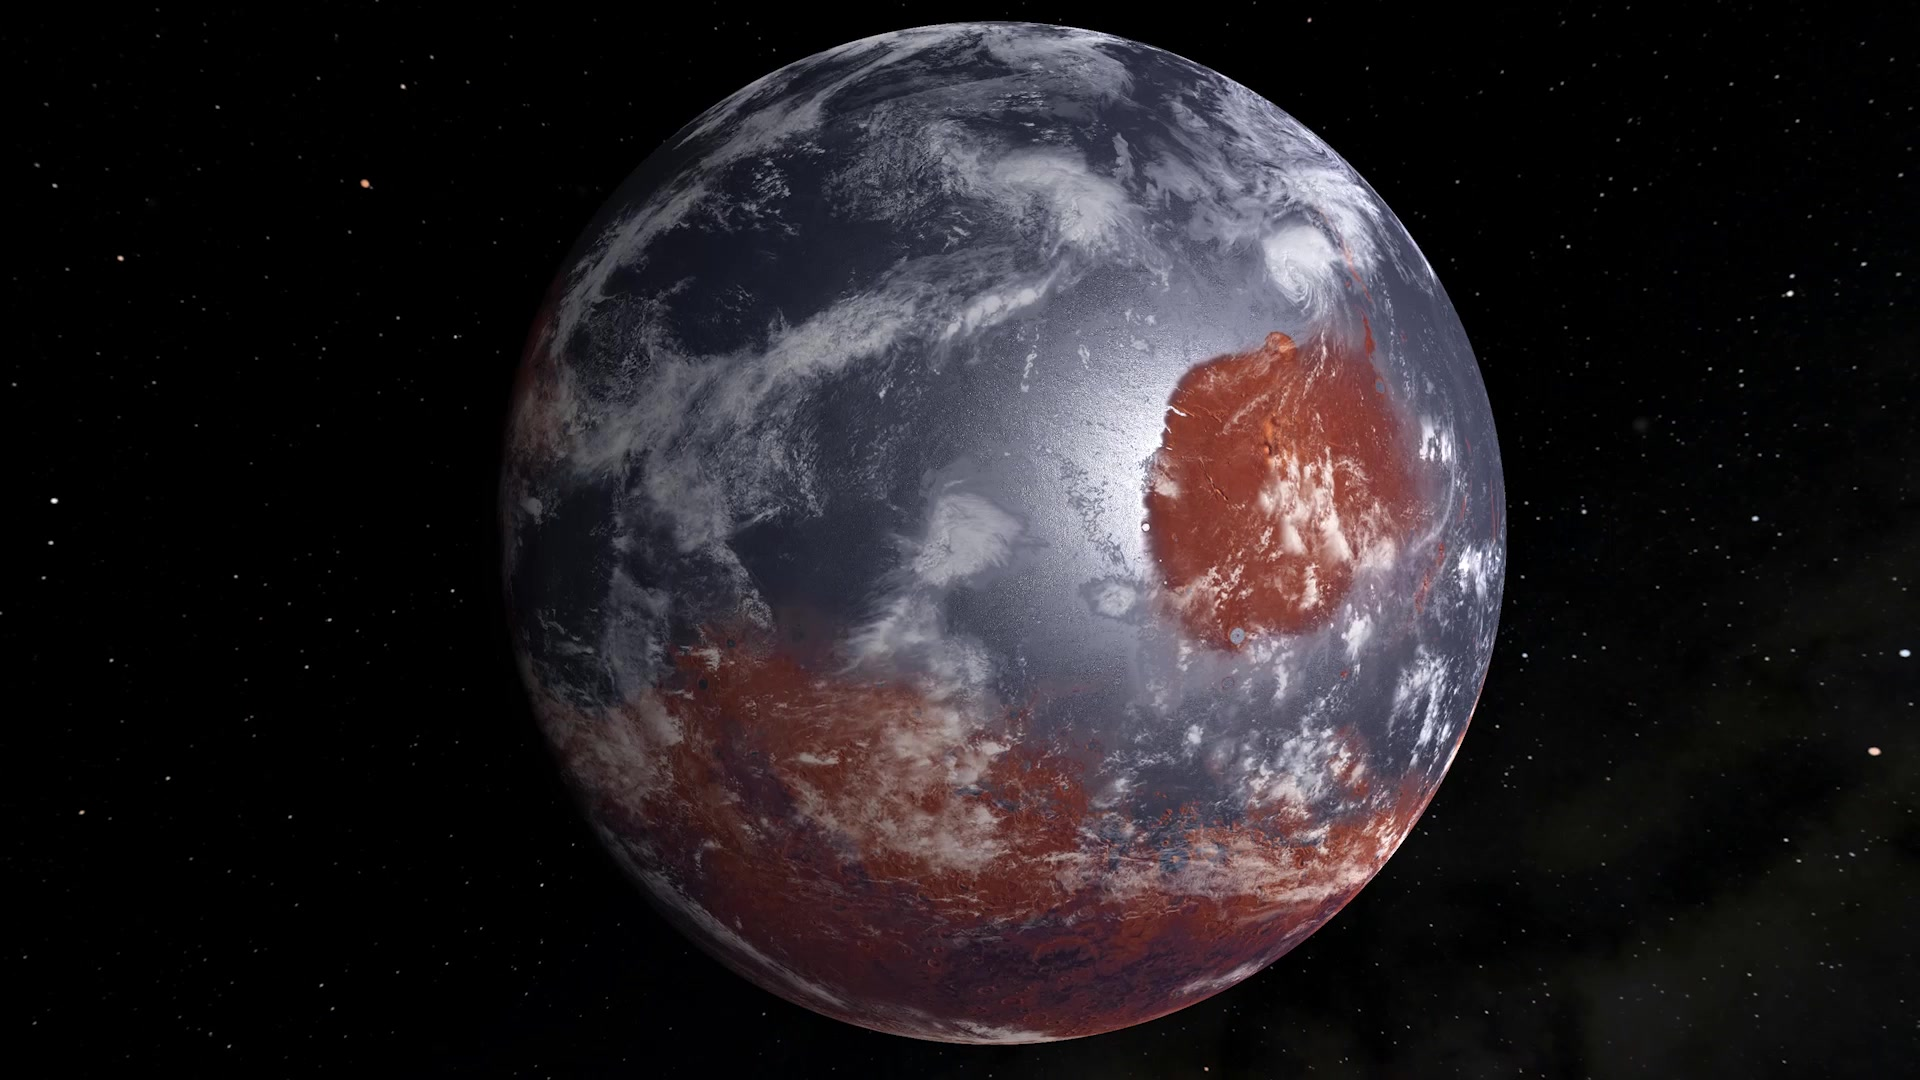 slide 3 - This is an artist's model of an early Mars - billions of years ago - which may have had oceans and a thicker atmosphere. It was created by filling Mars' lower altitudes with water and adding cloud cover.